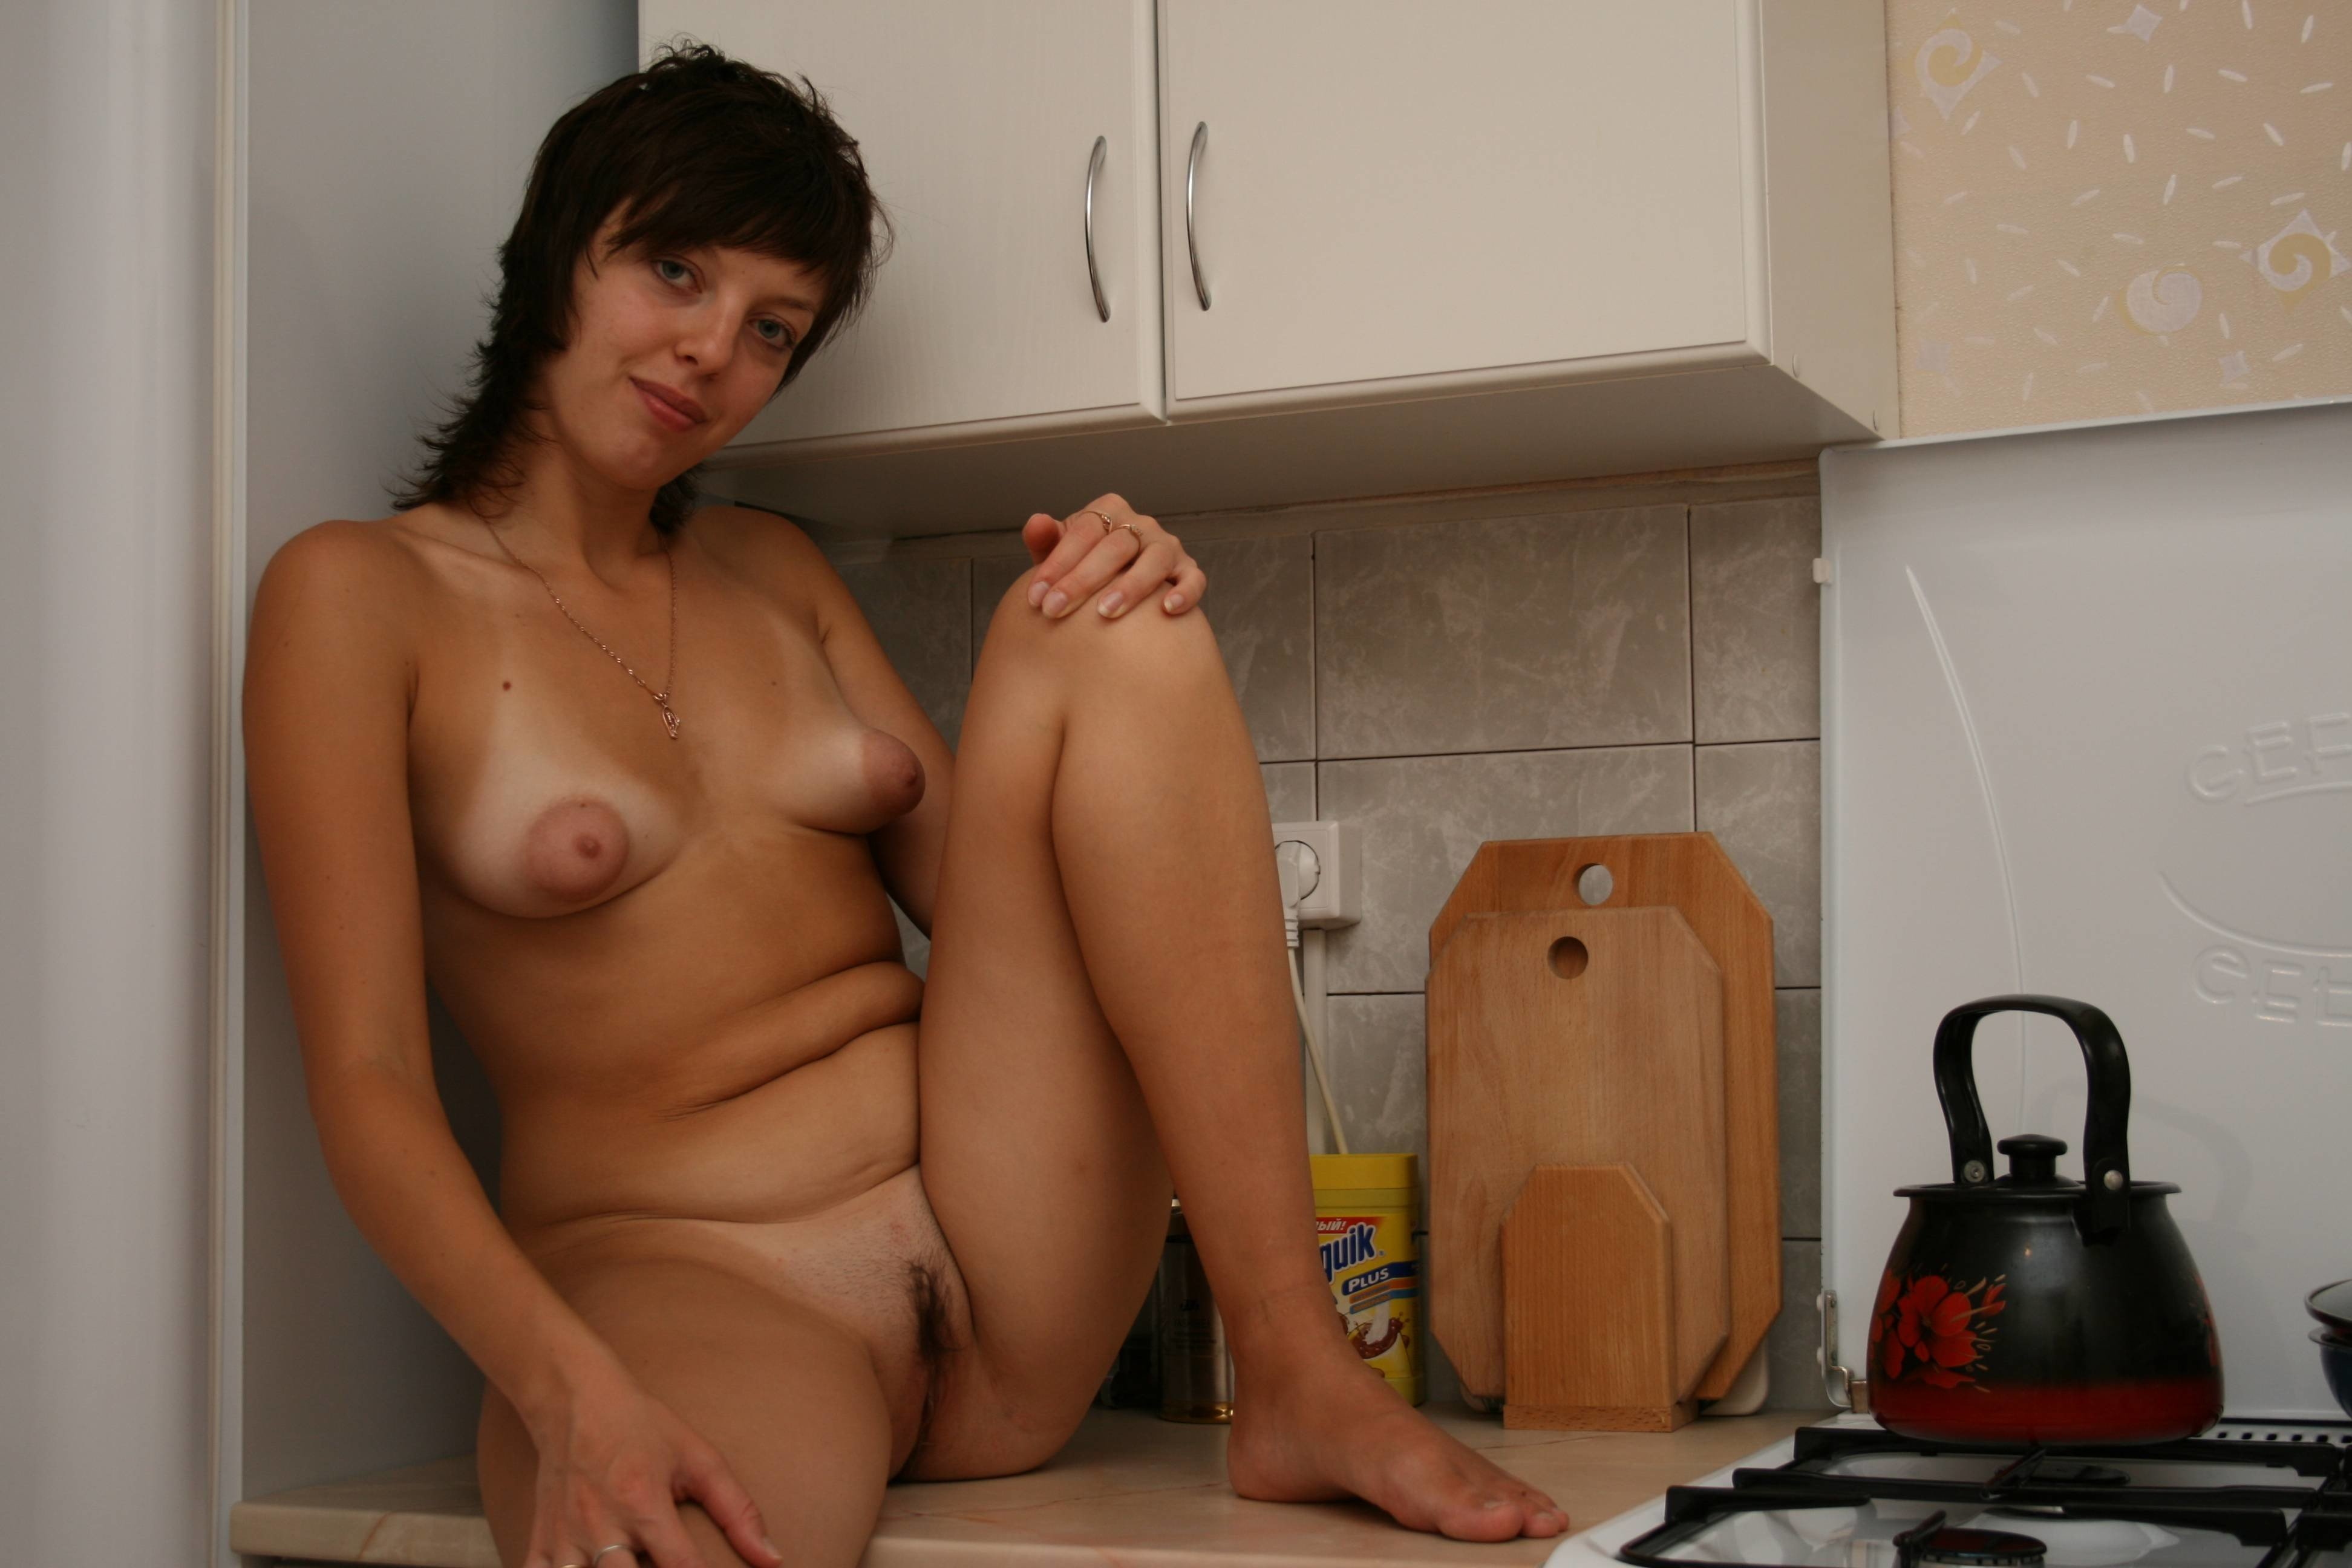 Nude housewives photo galleries